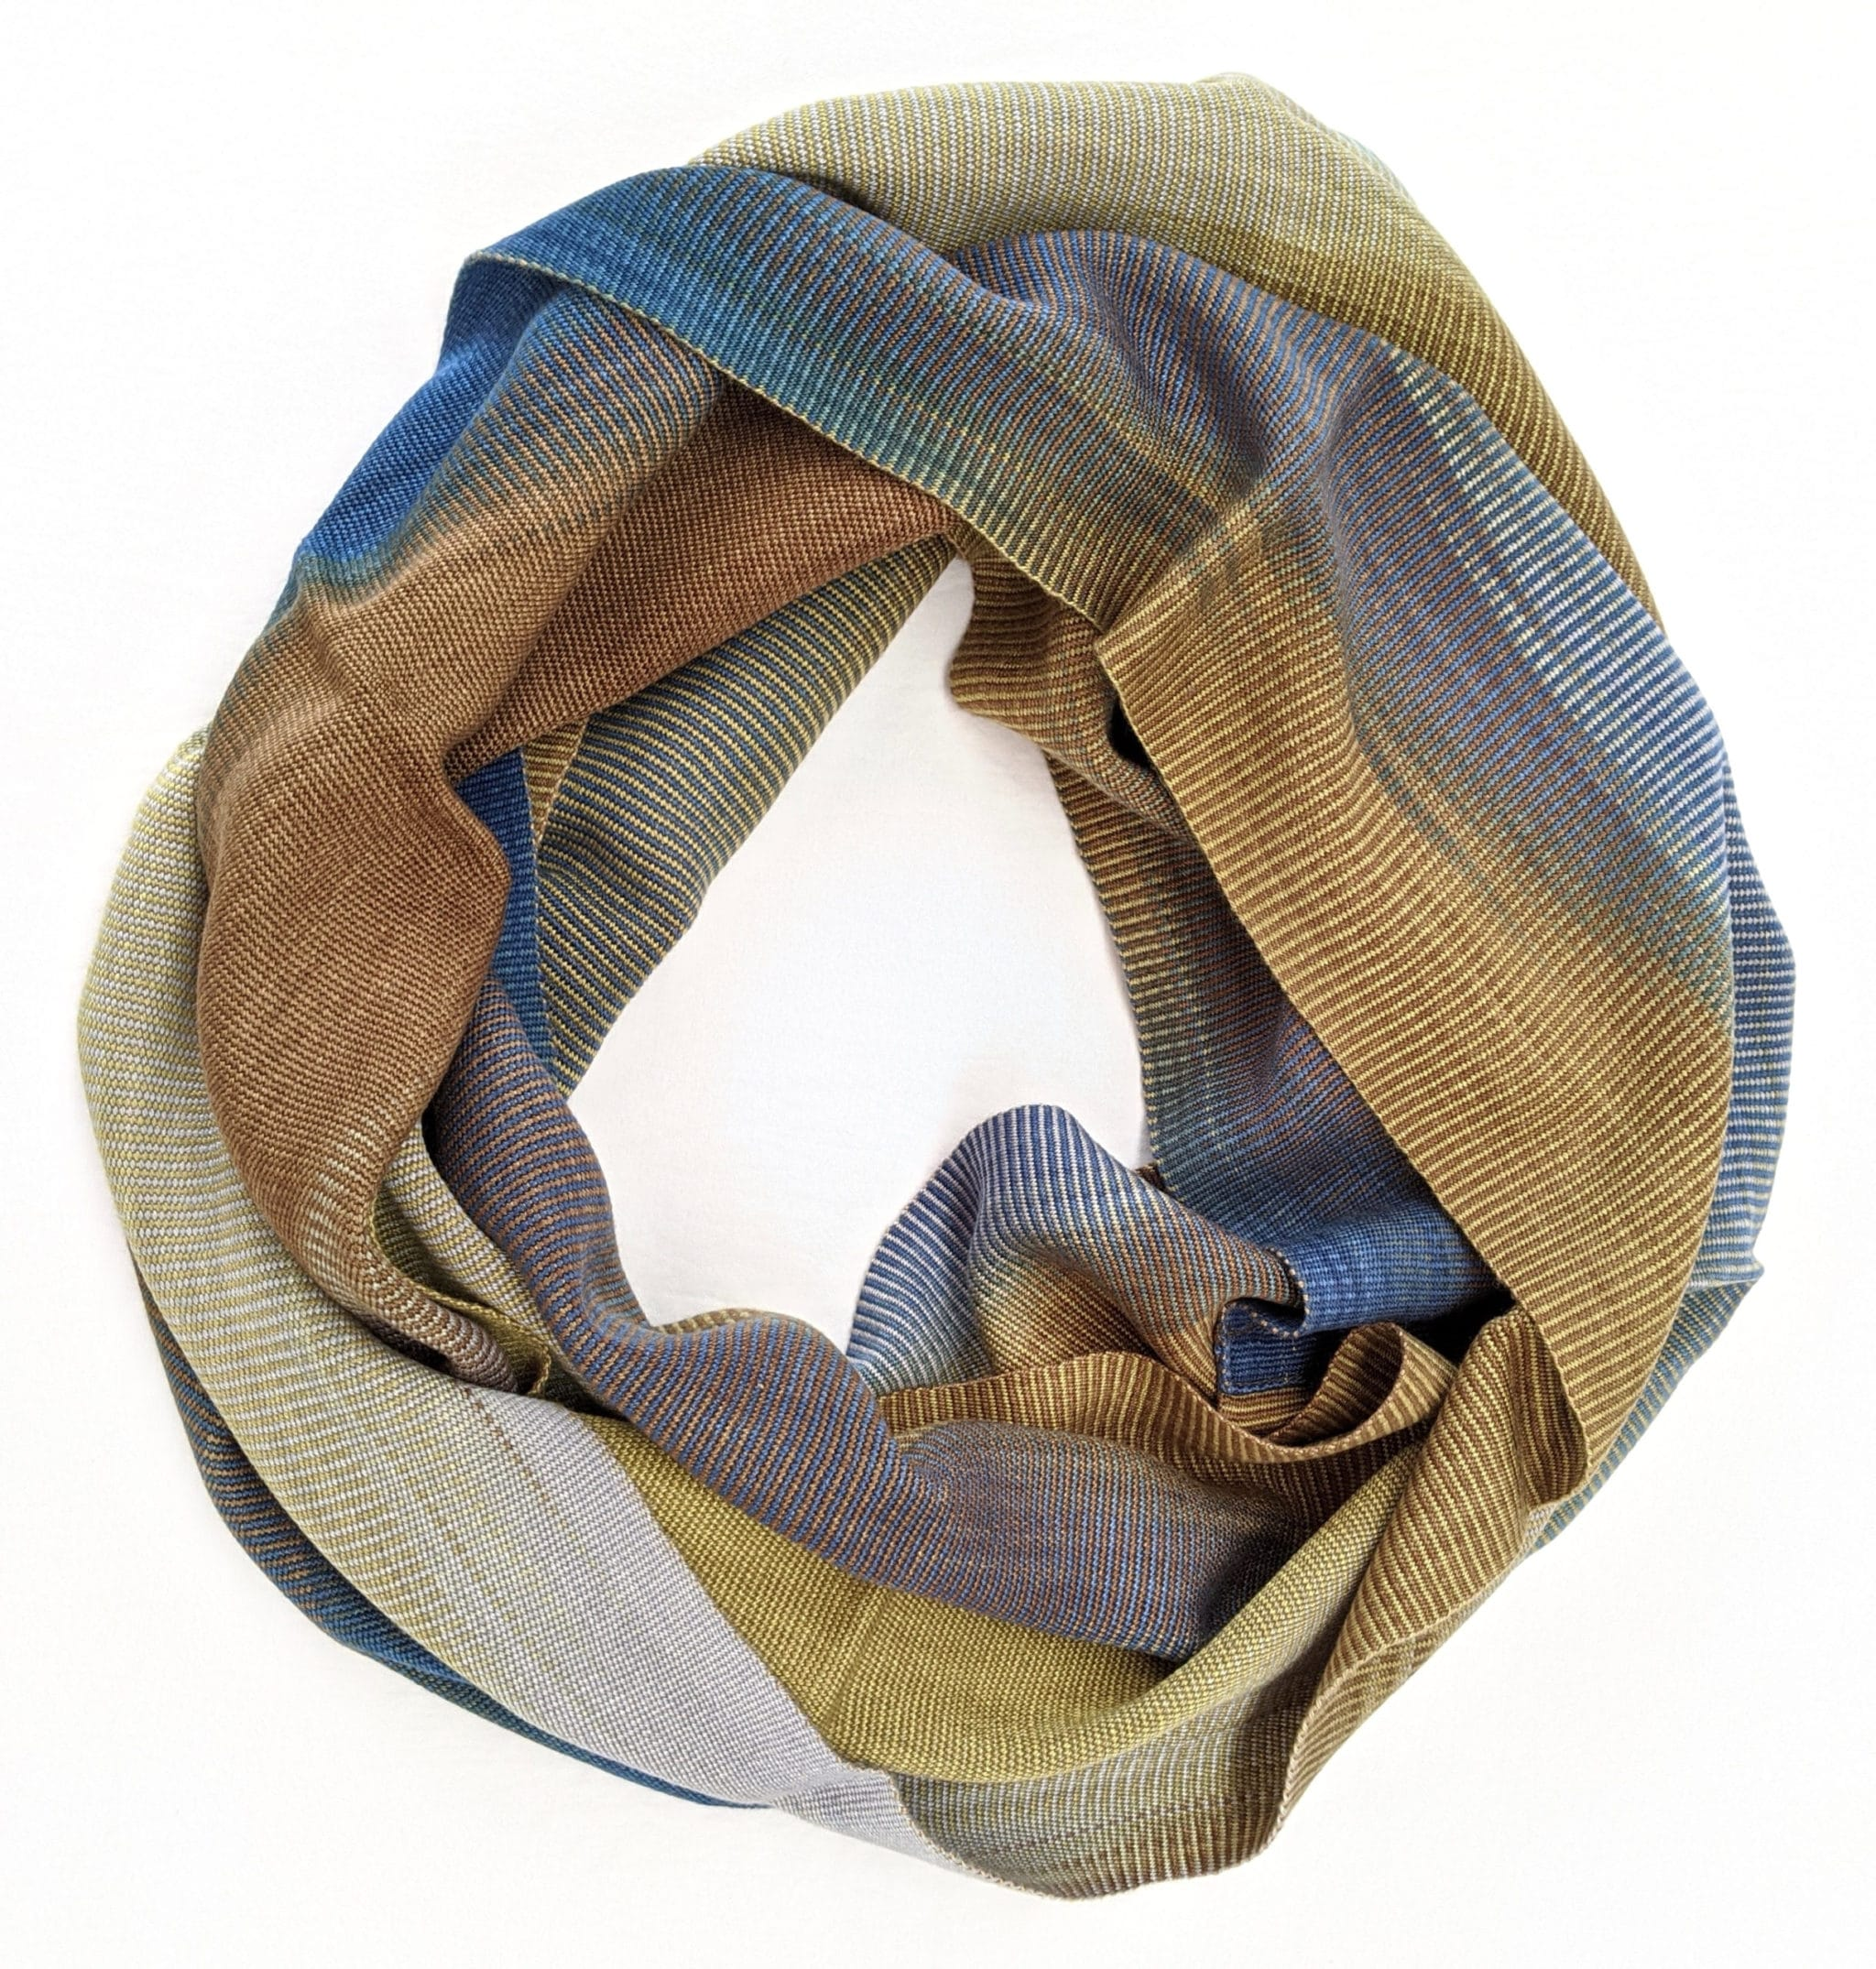 Lightweight Bamboo Handwoven Infinity Scarf 10 x 68 - A Variety of Colors